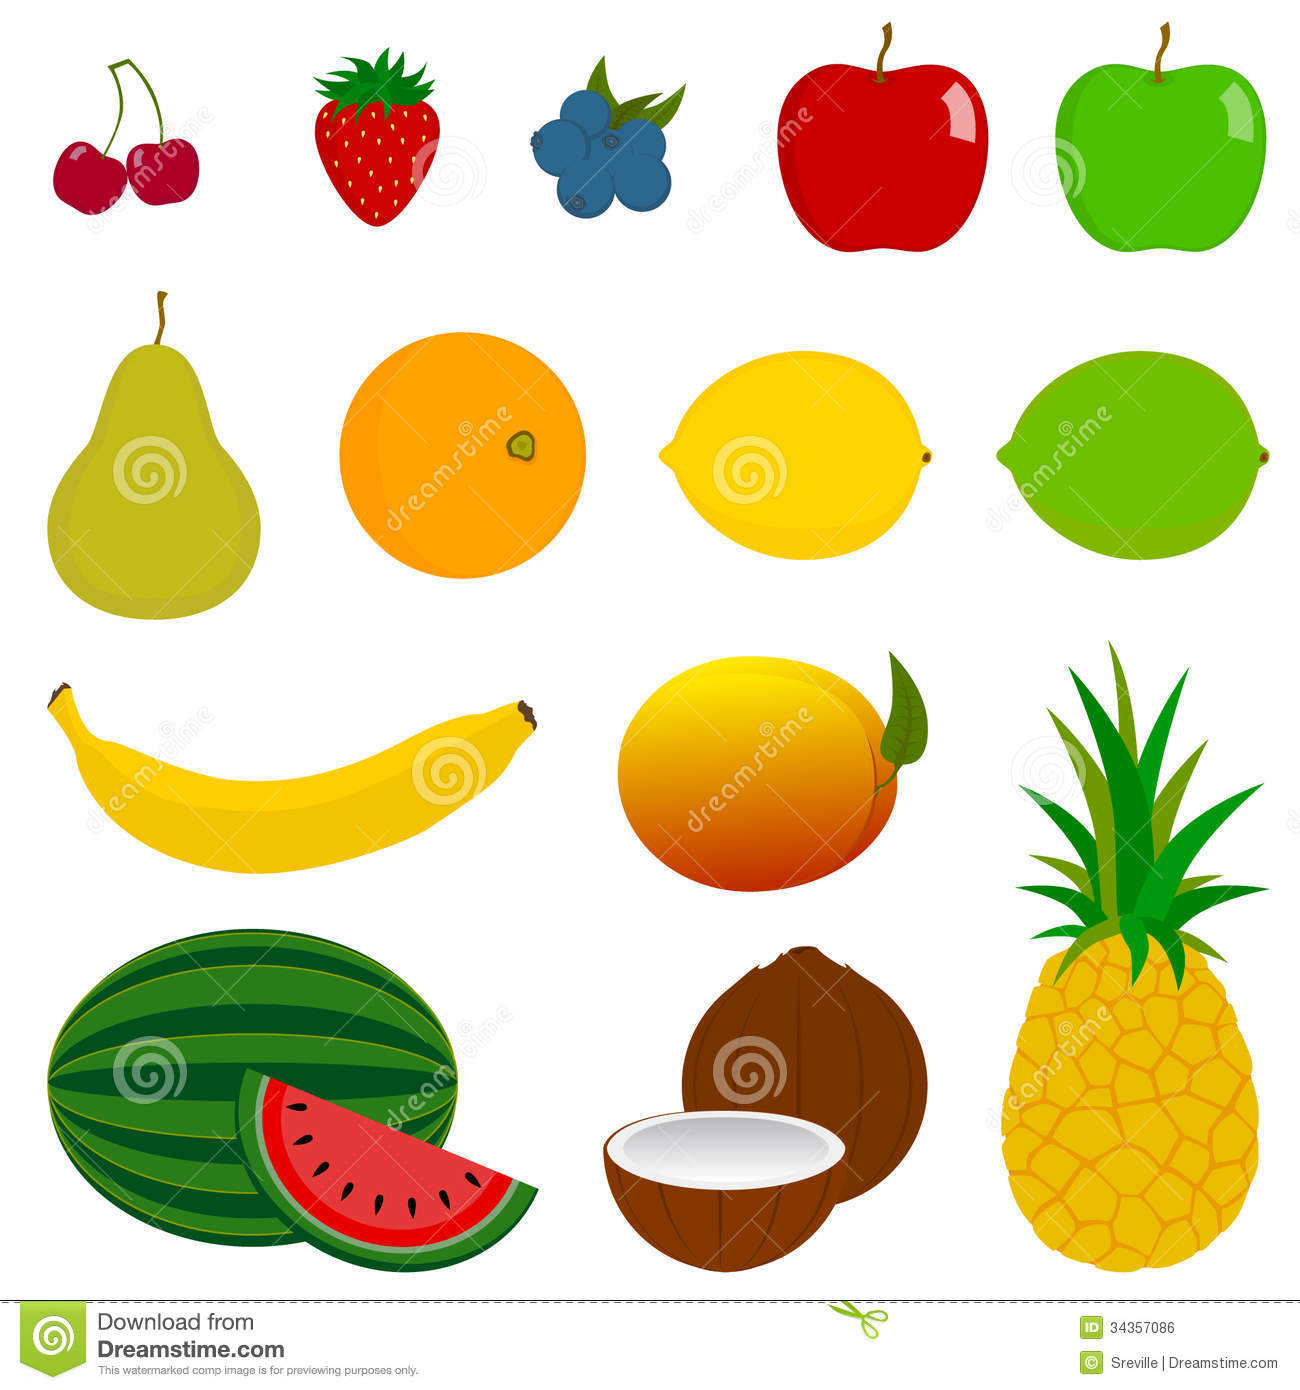 Watermelon Wallpaper Cute One 14 Fresh Fruit Icons Stock Vector Illustration Of